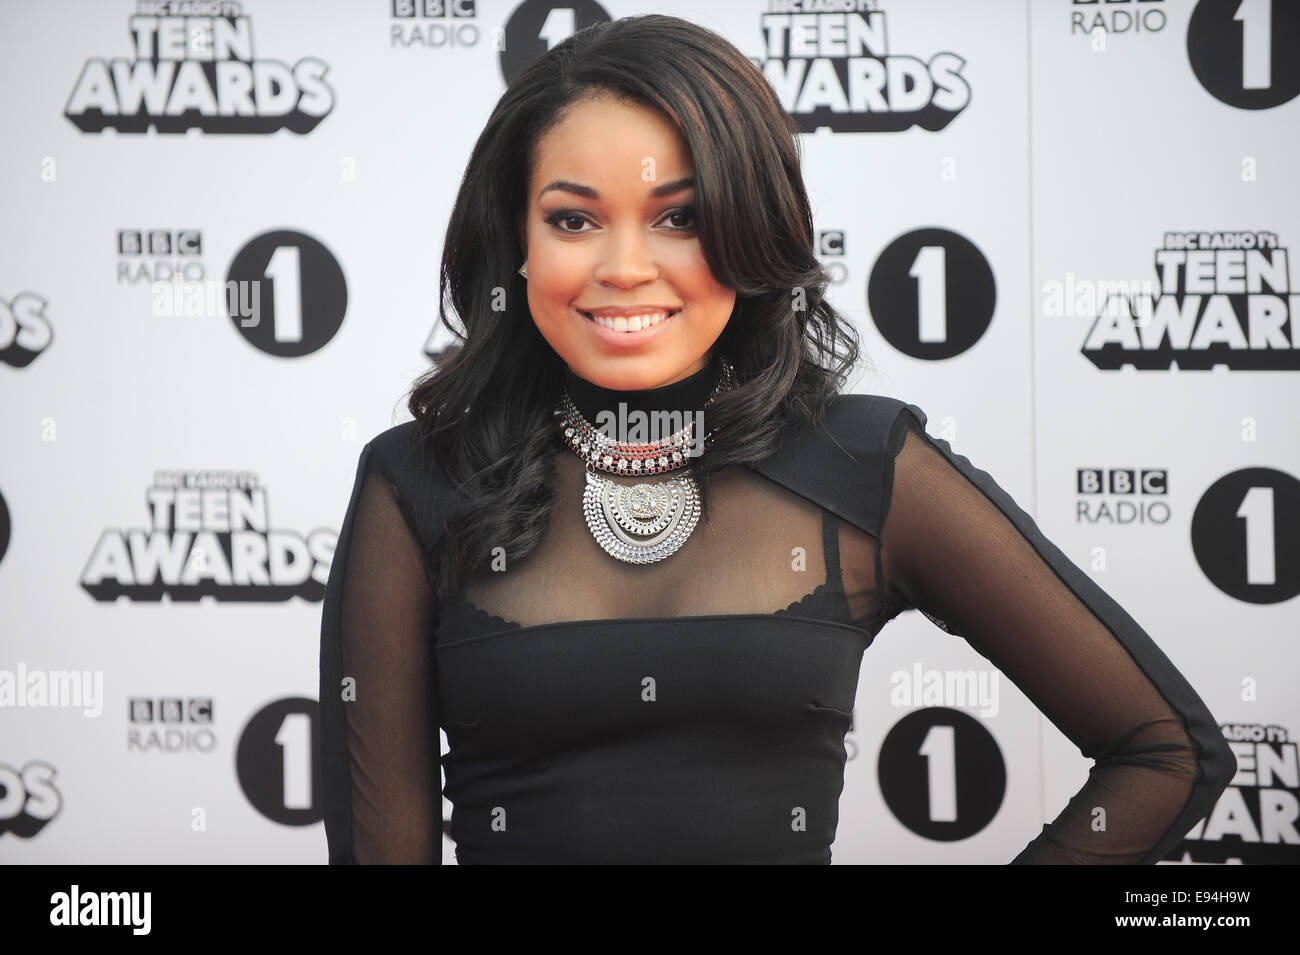 dionne bromfield stock photos & dionne bromfield stock images - alamy